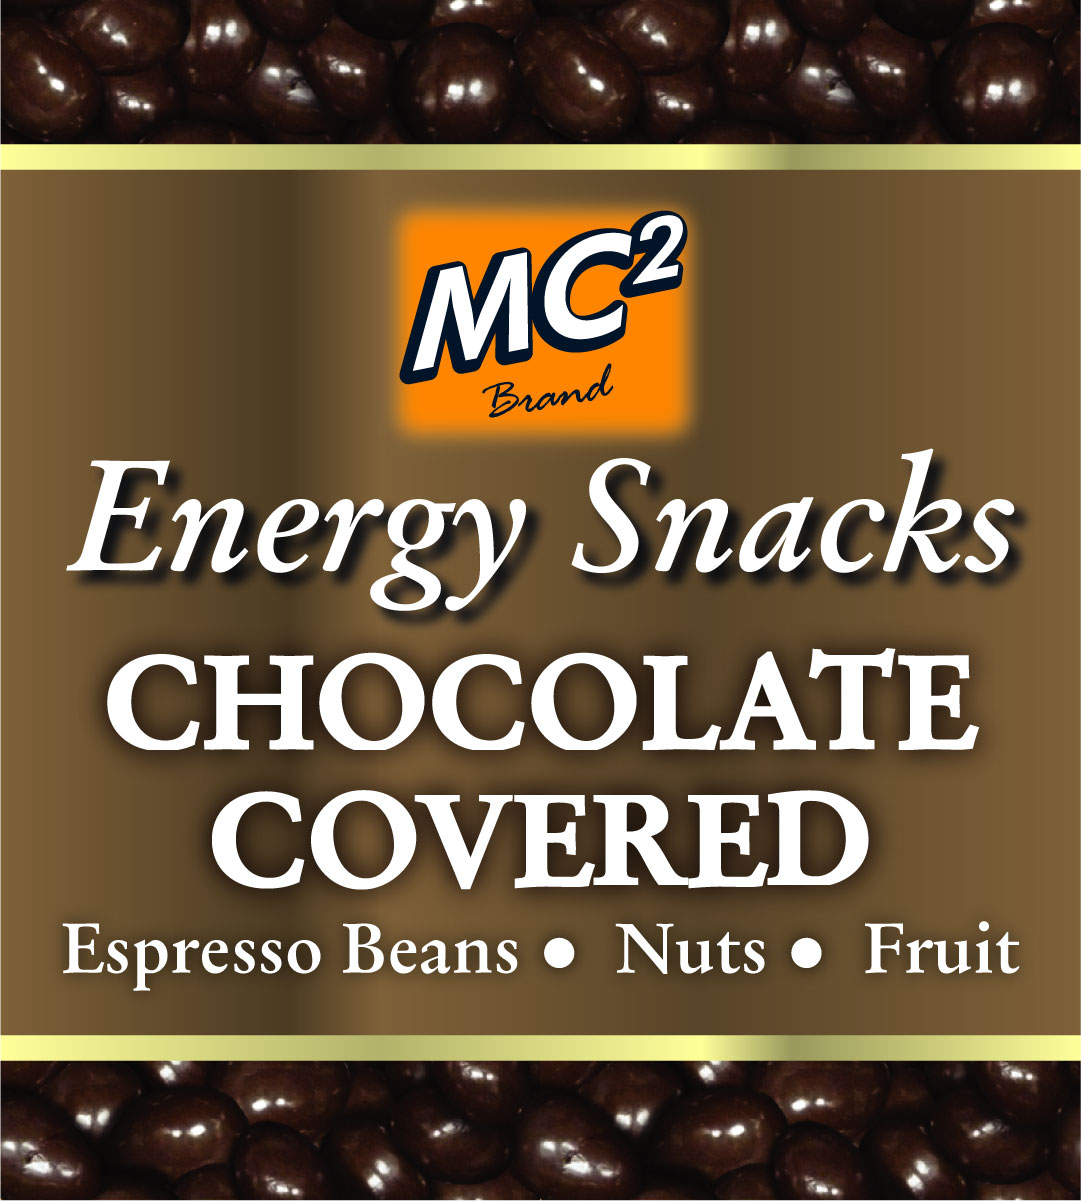 MC Squared Energy Snacks